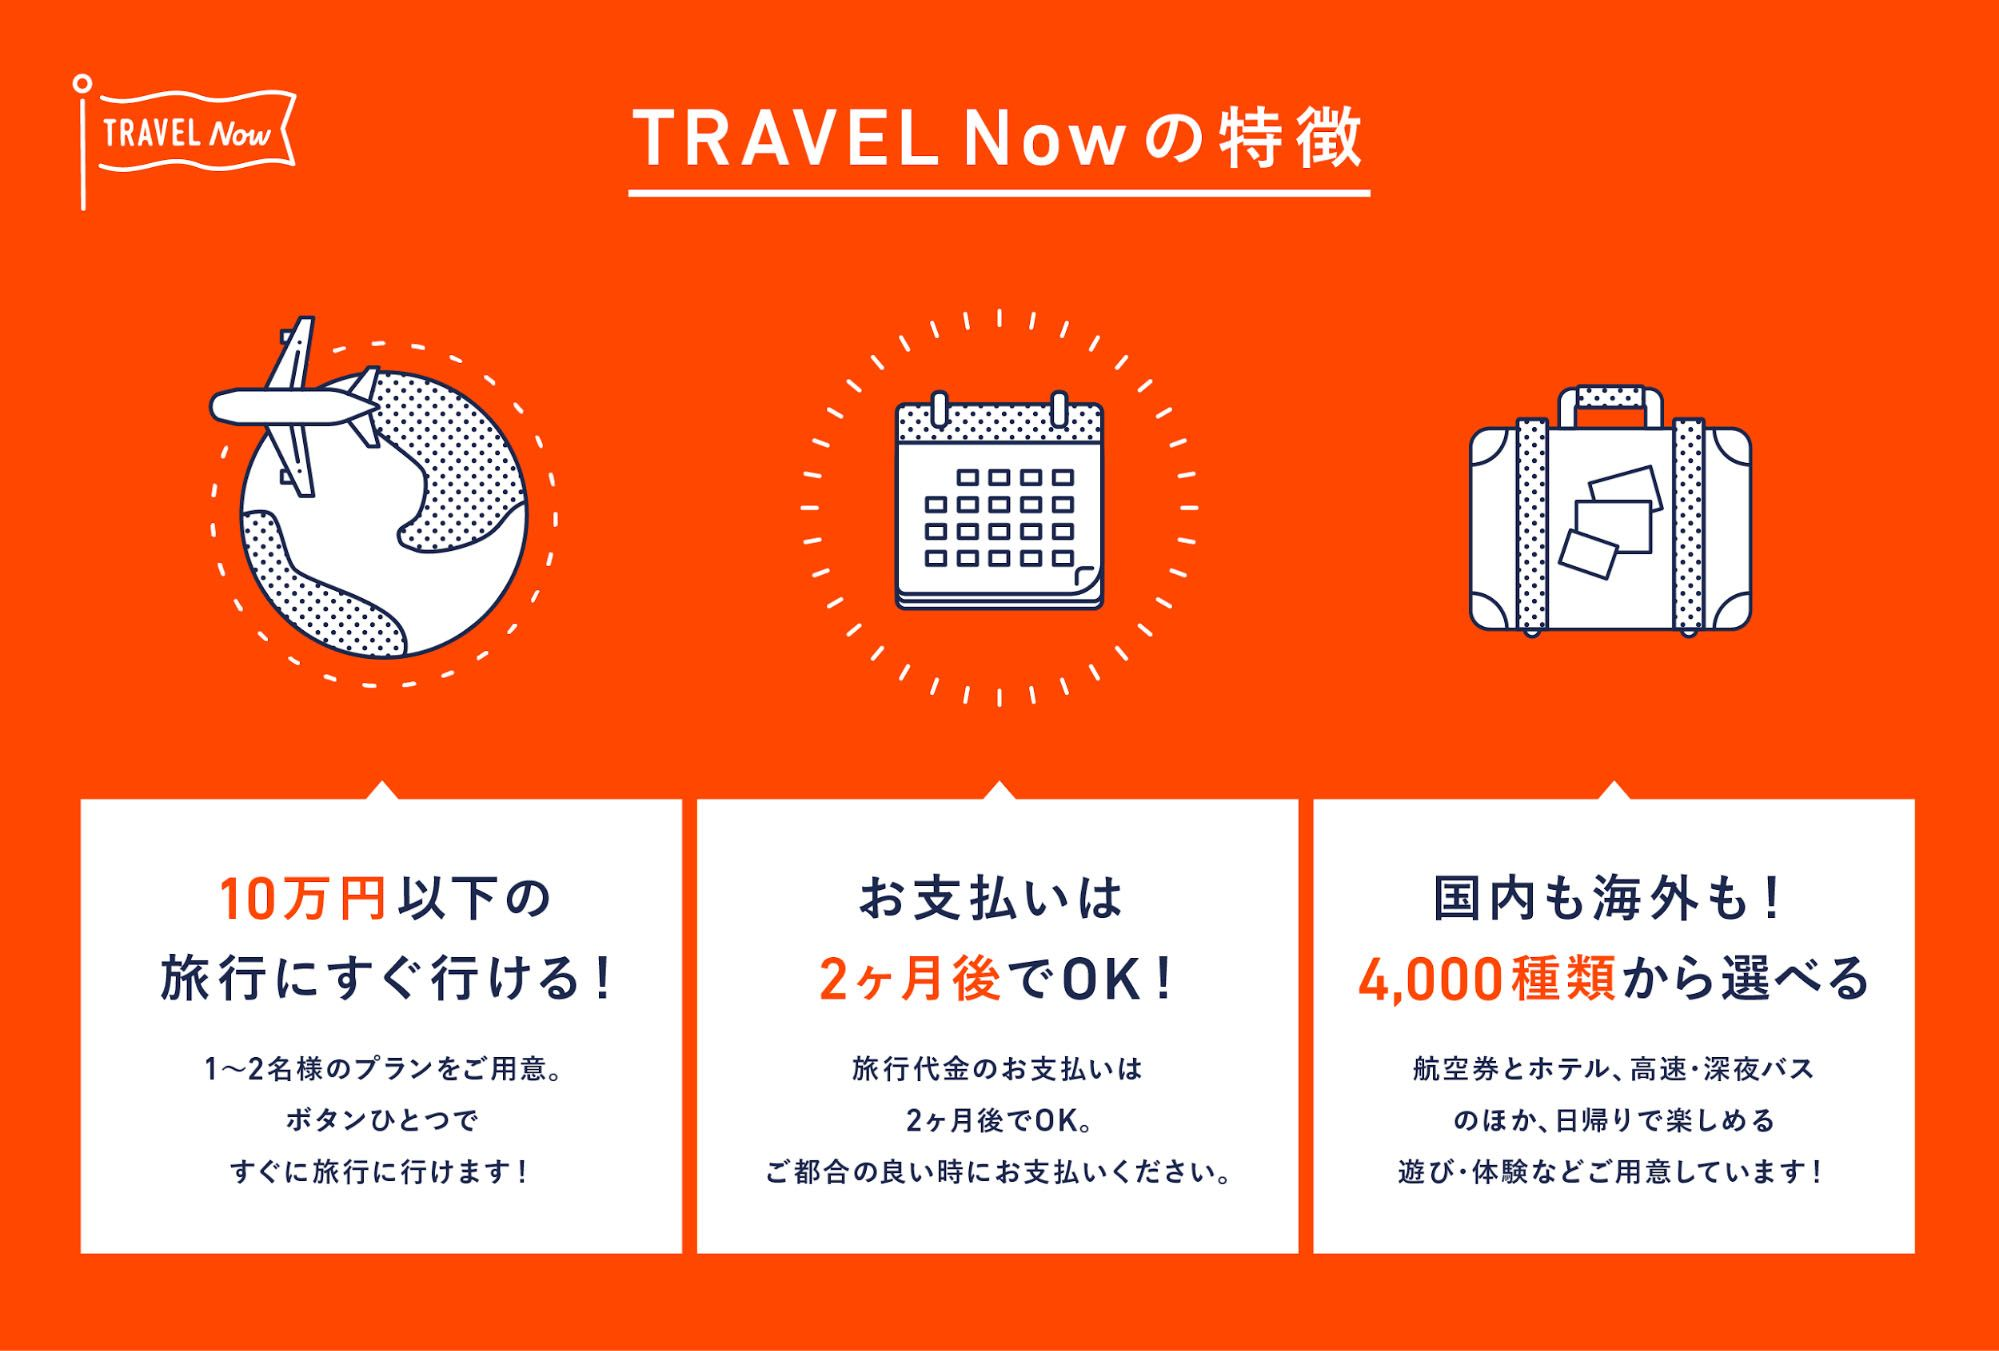 TRAVEL Nowの特徴